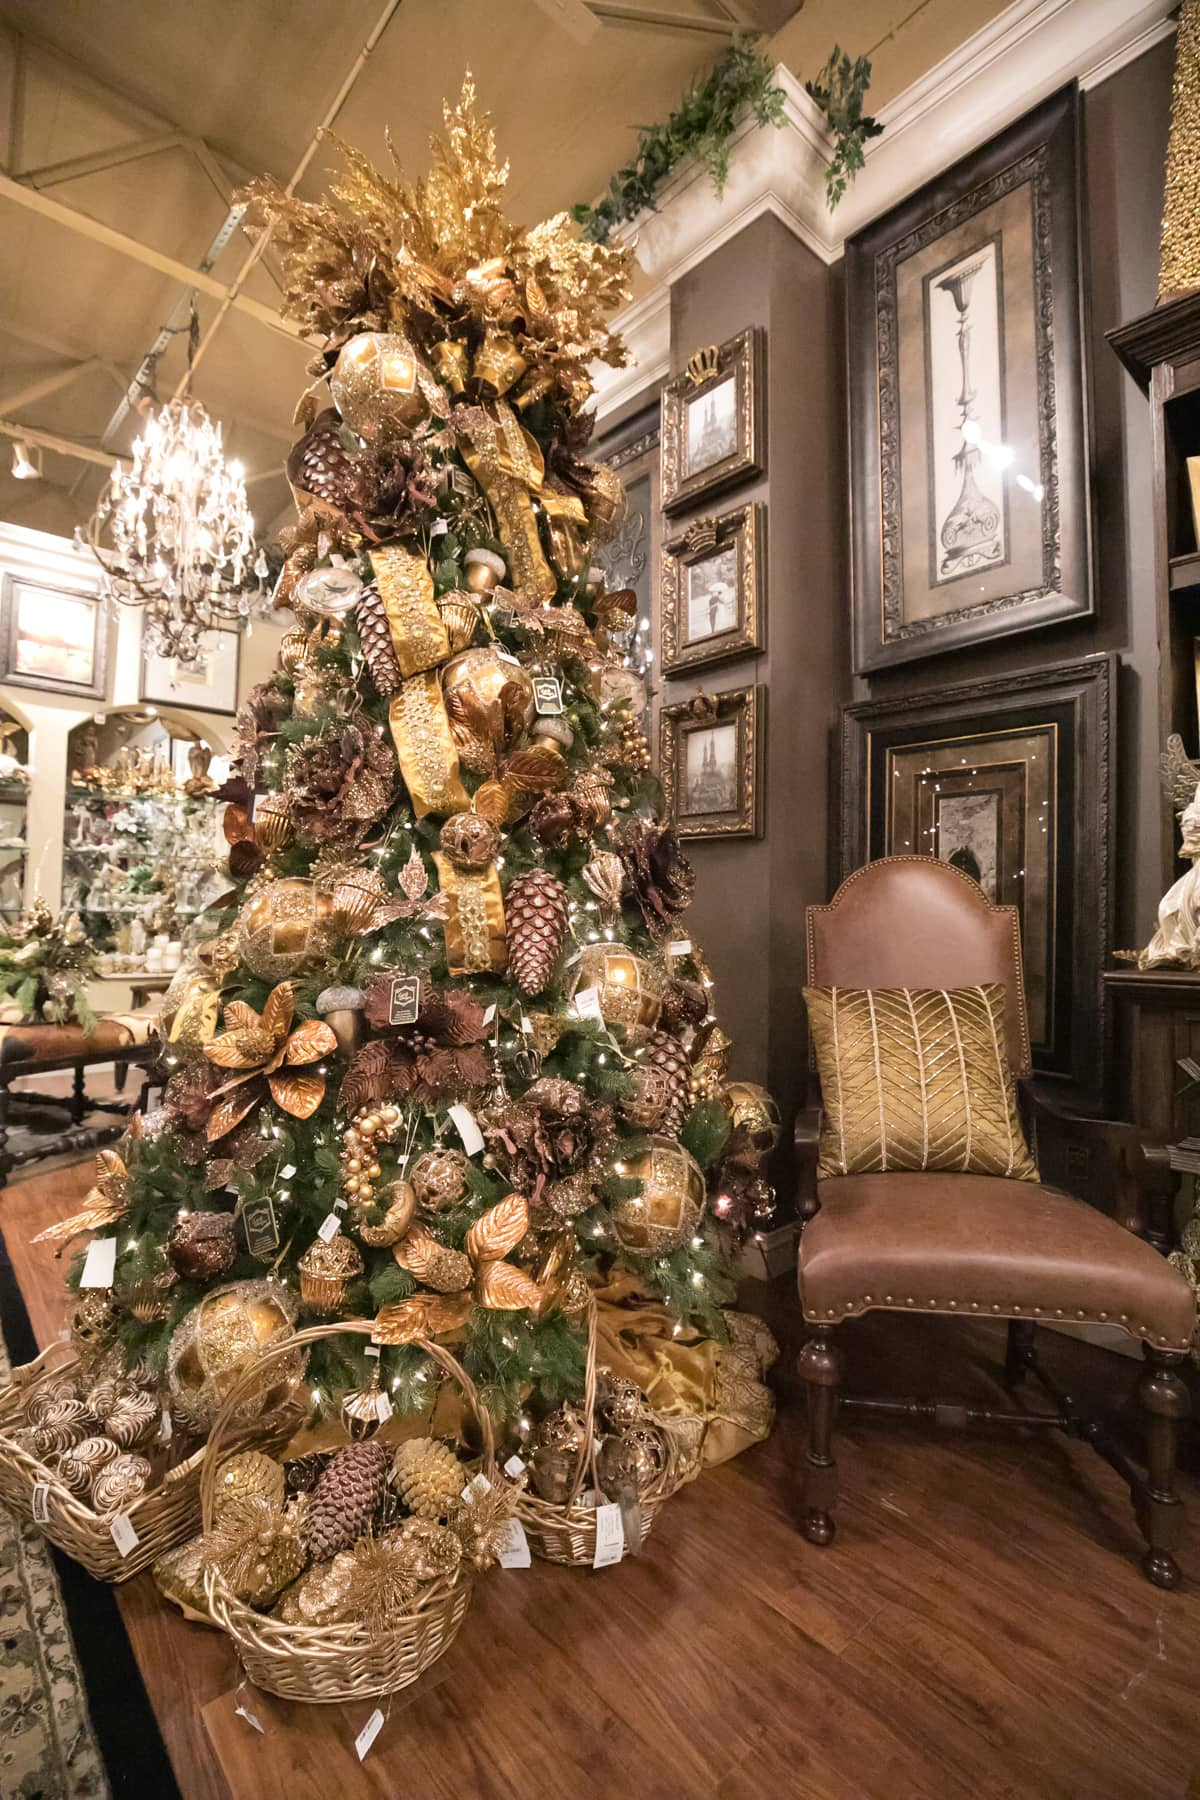 Linly Designs Luxury Christmas Decor